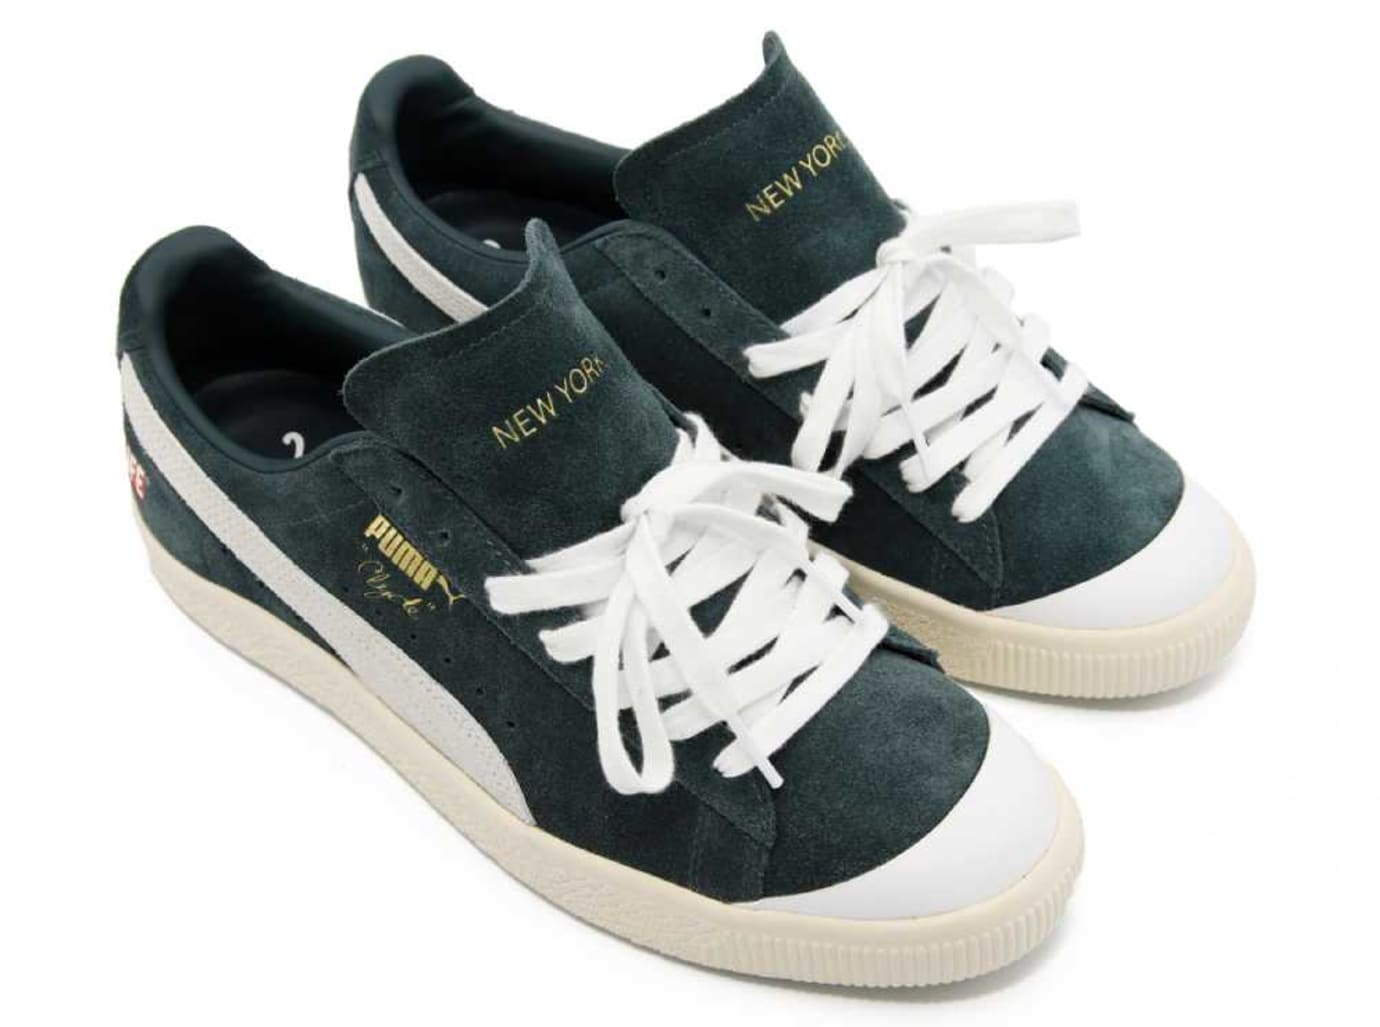 ALIFE x Puma Clyde Green Release Date Front